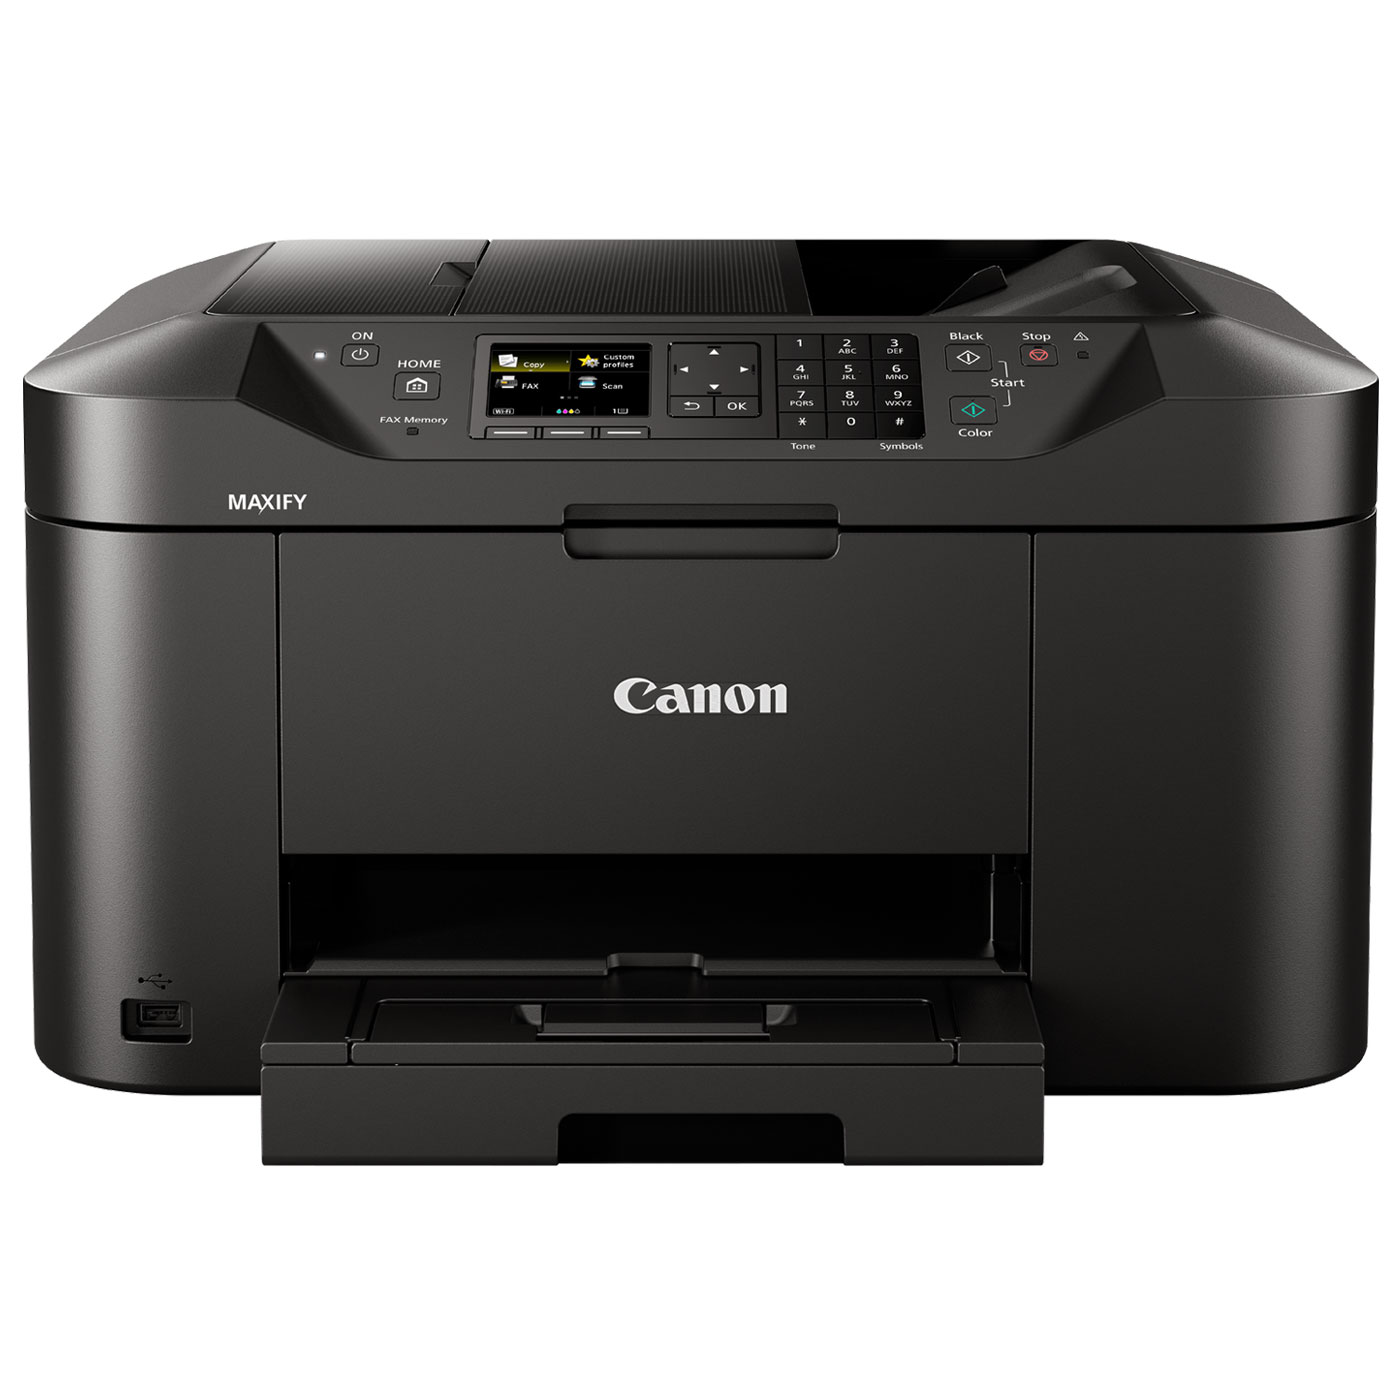 canon maxify mb2150 imprimante multifonction canon sur. Black Bedroom Furniture Sets. Home Design Ideas